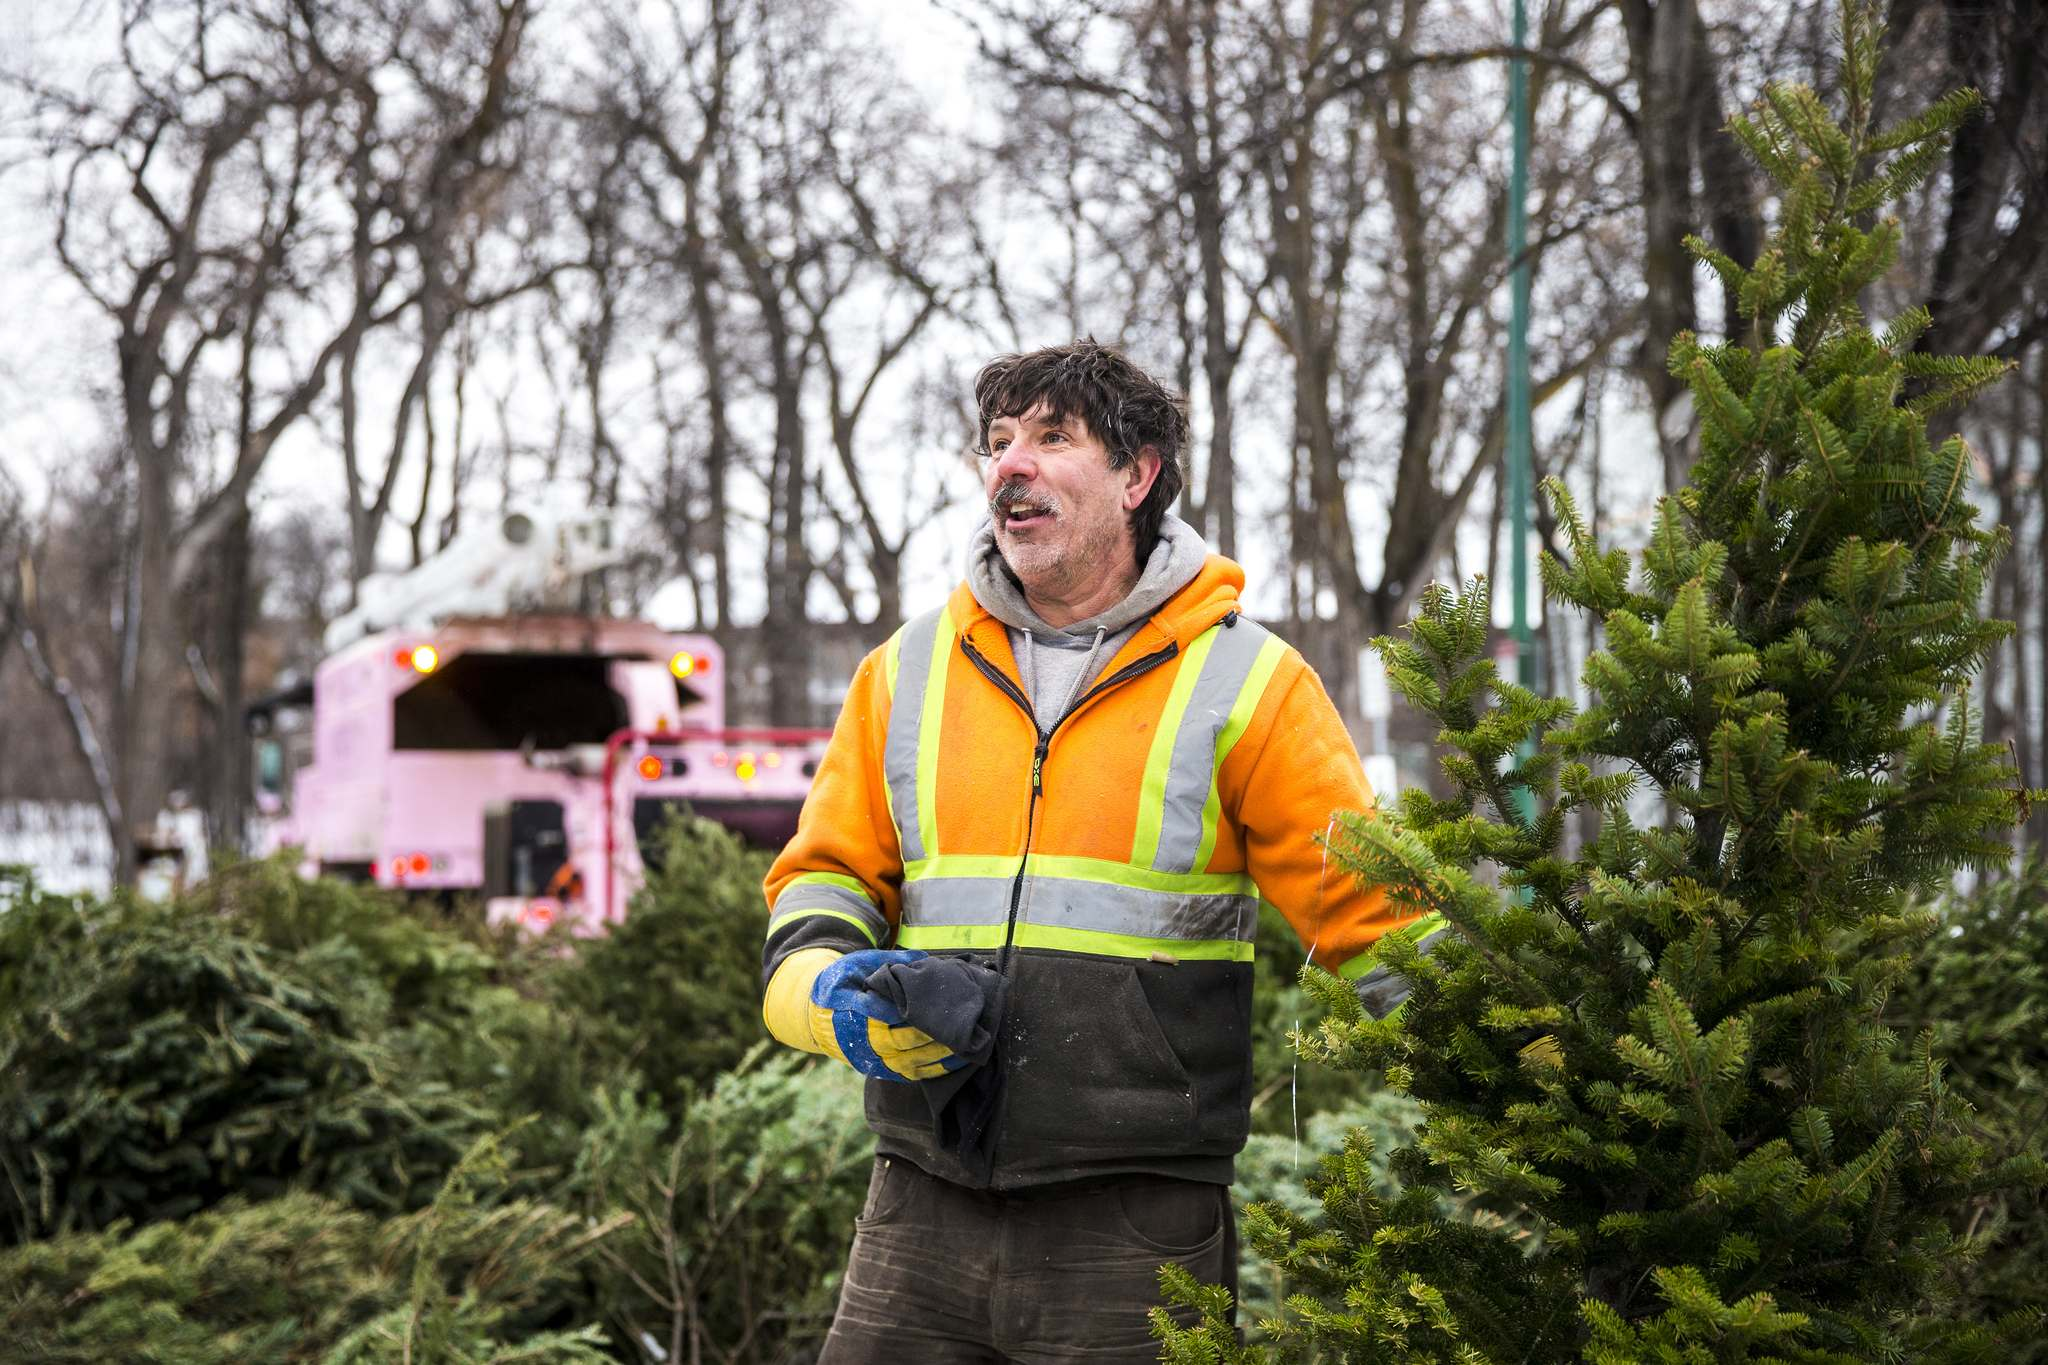 Doug Panchuk, owner of Shurwood Forest, helps remove forgotten ornaments before the trees are fed into the chipper.